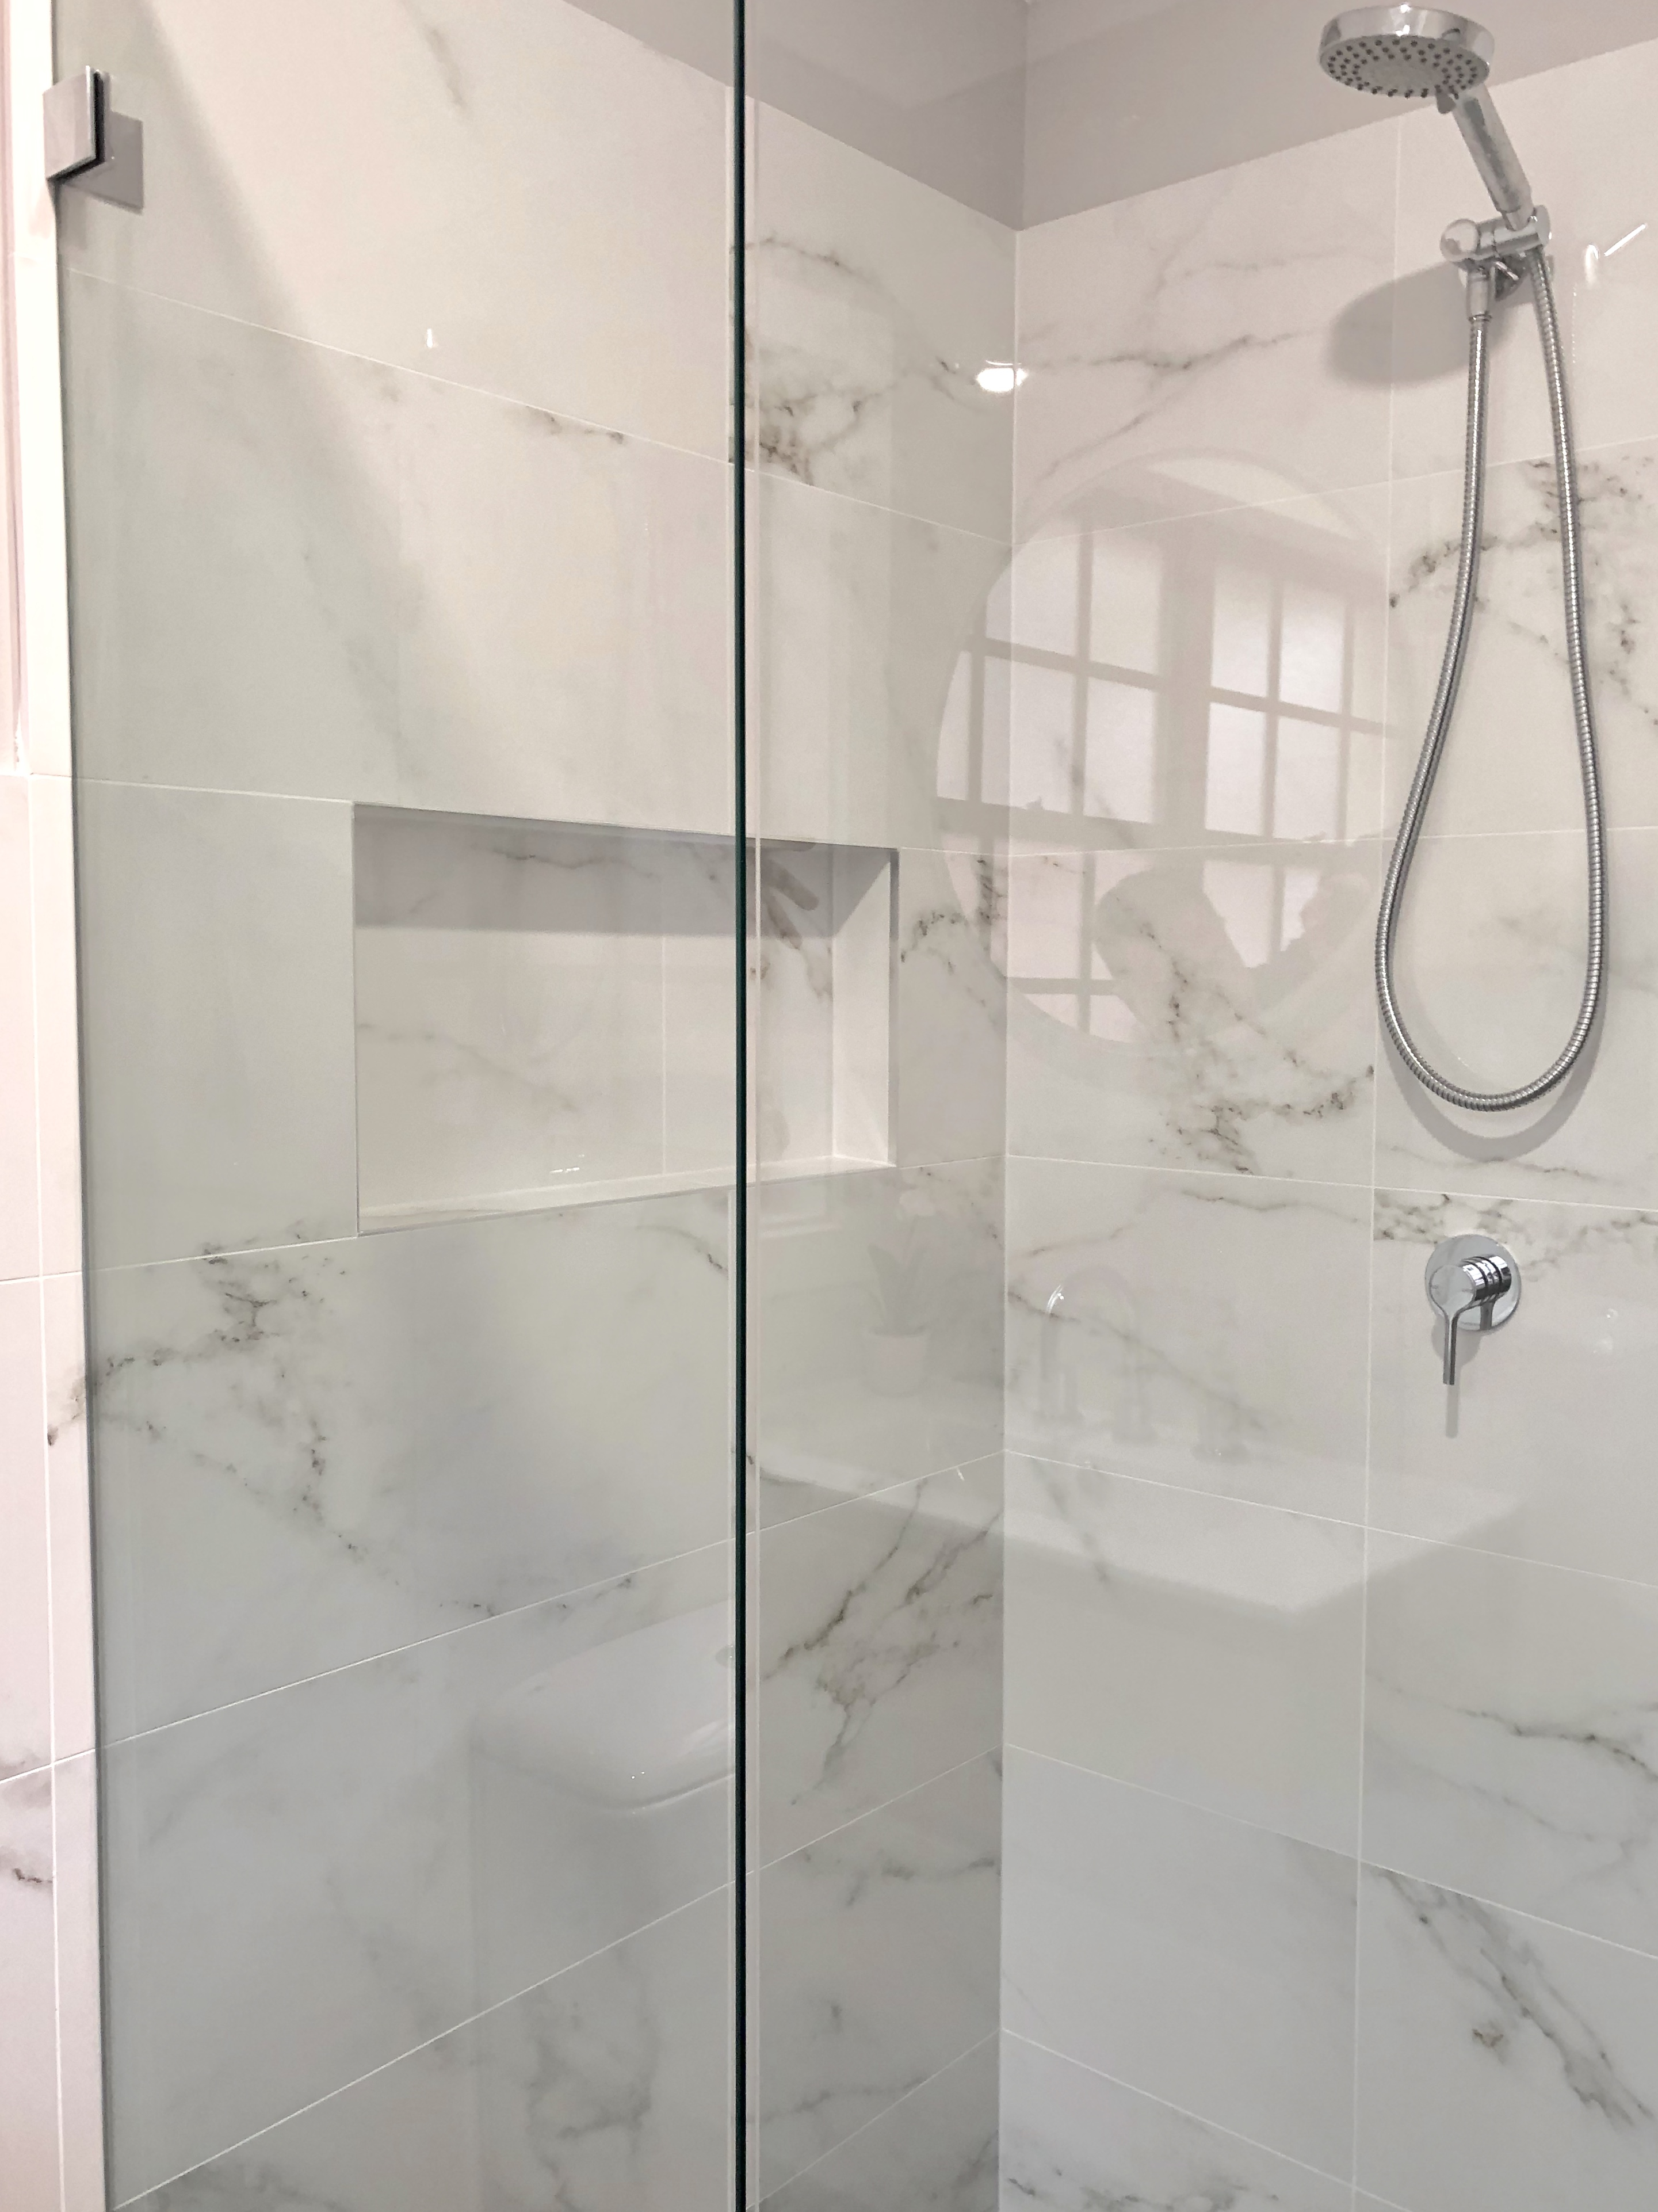 Corner shower recess with hand held shower rose, mixer, niche and frameless shower screen - bathroom renovation by Master Bathrooms & Kitchens.